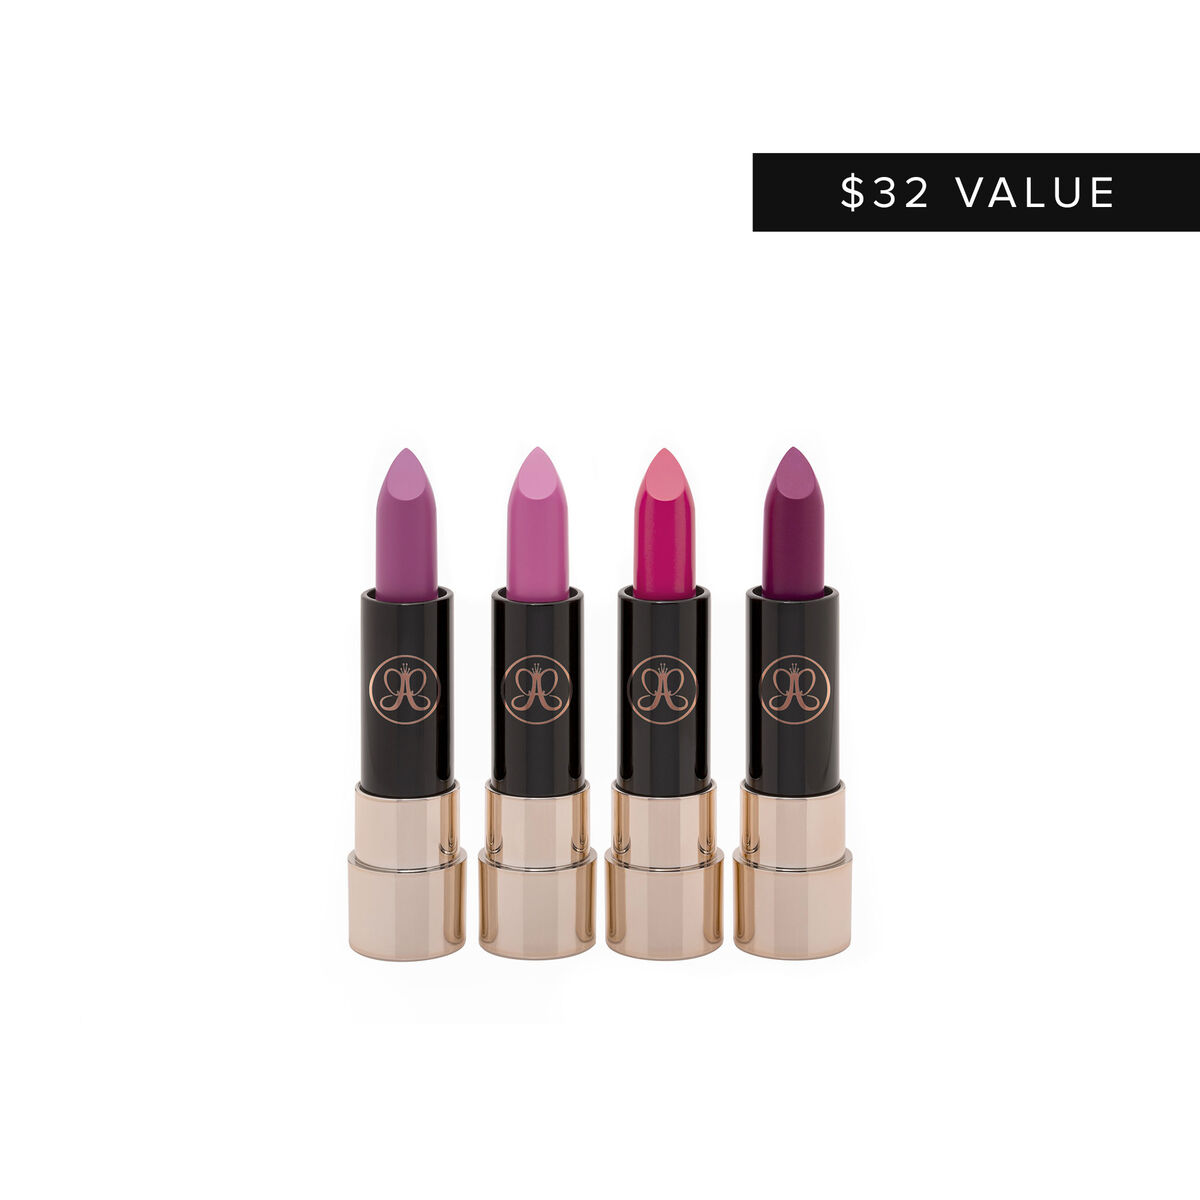 Mini Matte Lipstick 4-Piece Set - Pinks & Berries